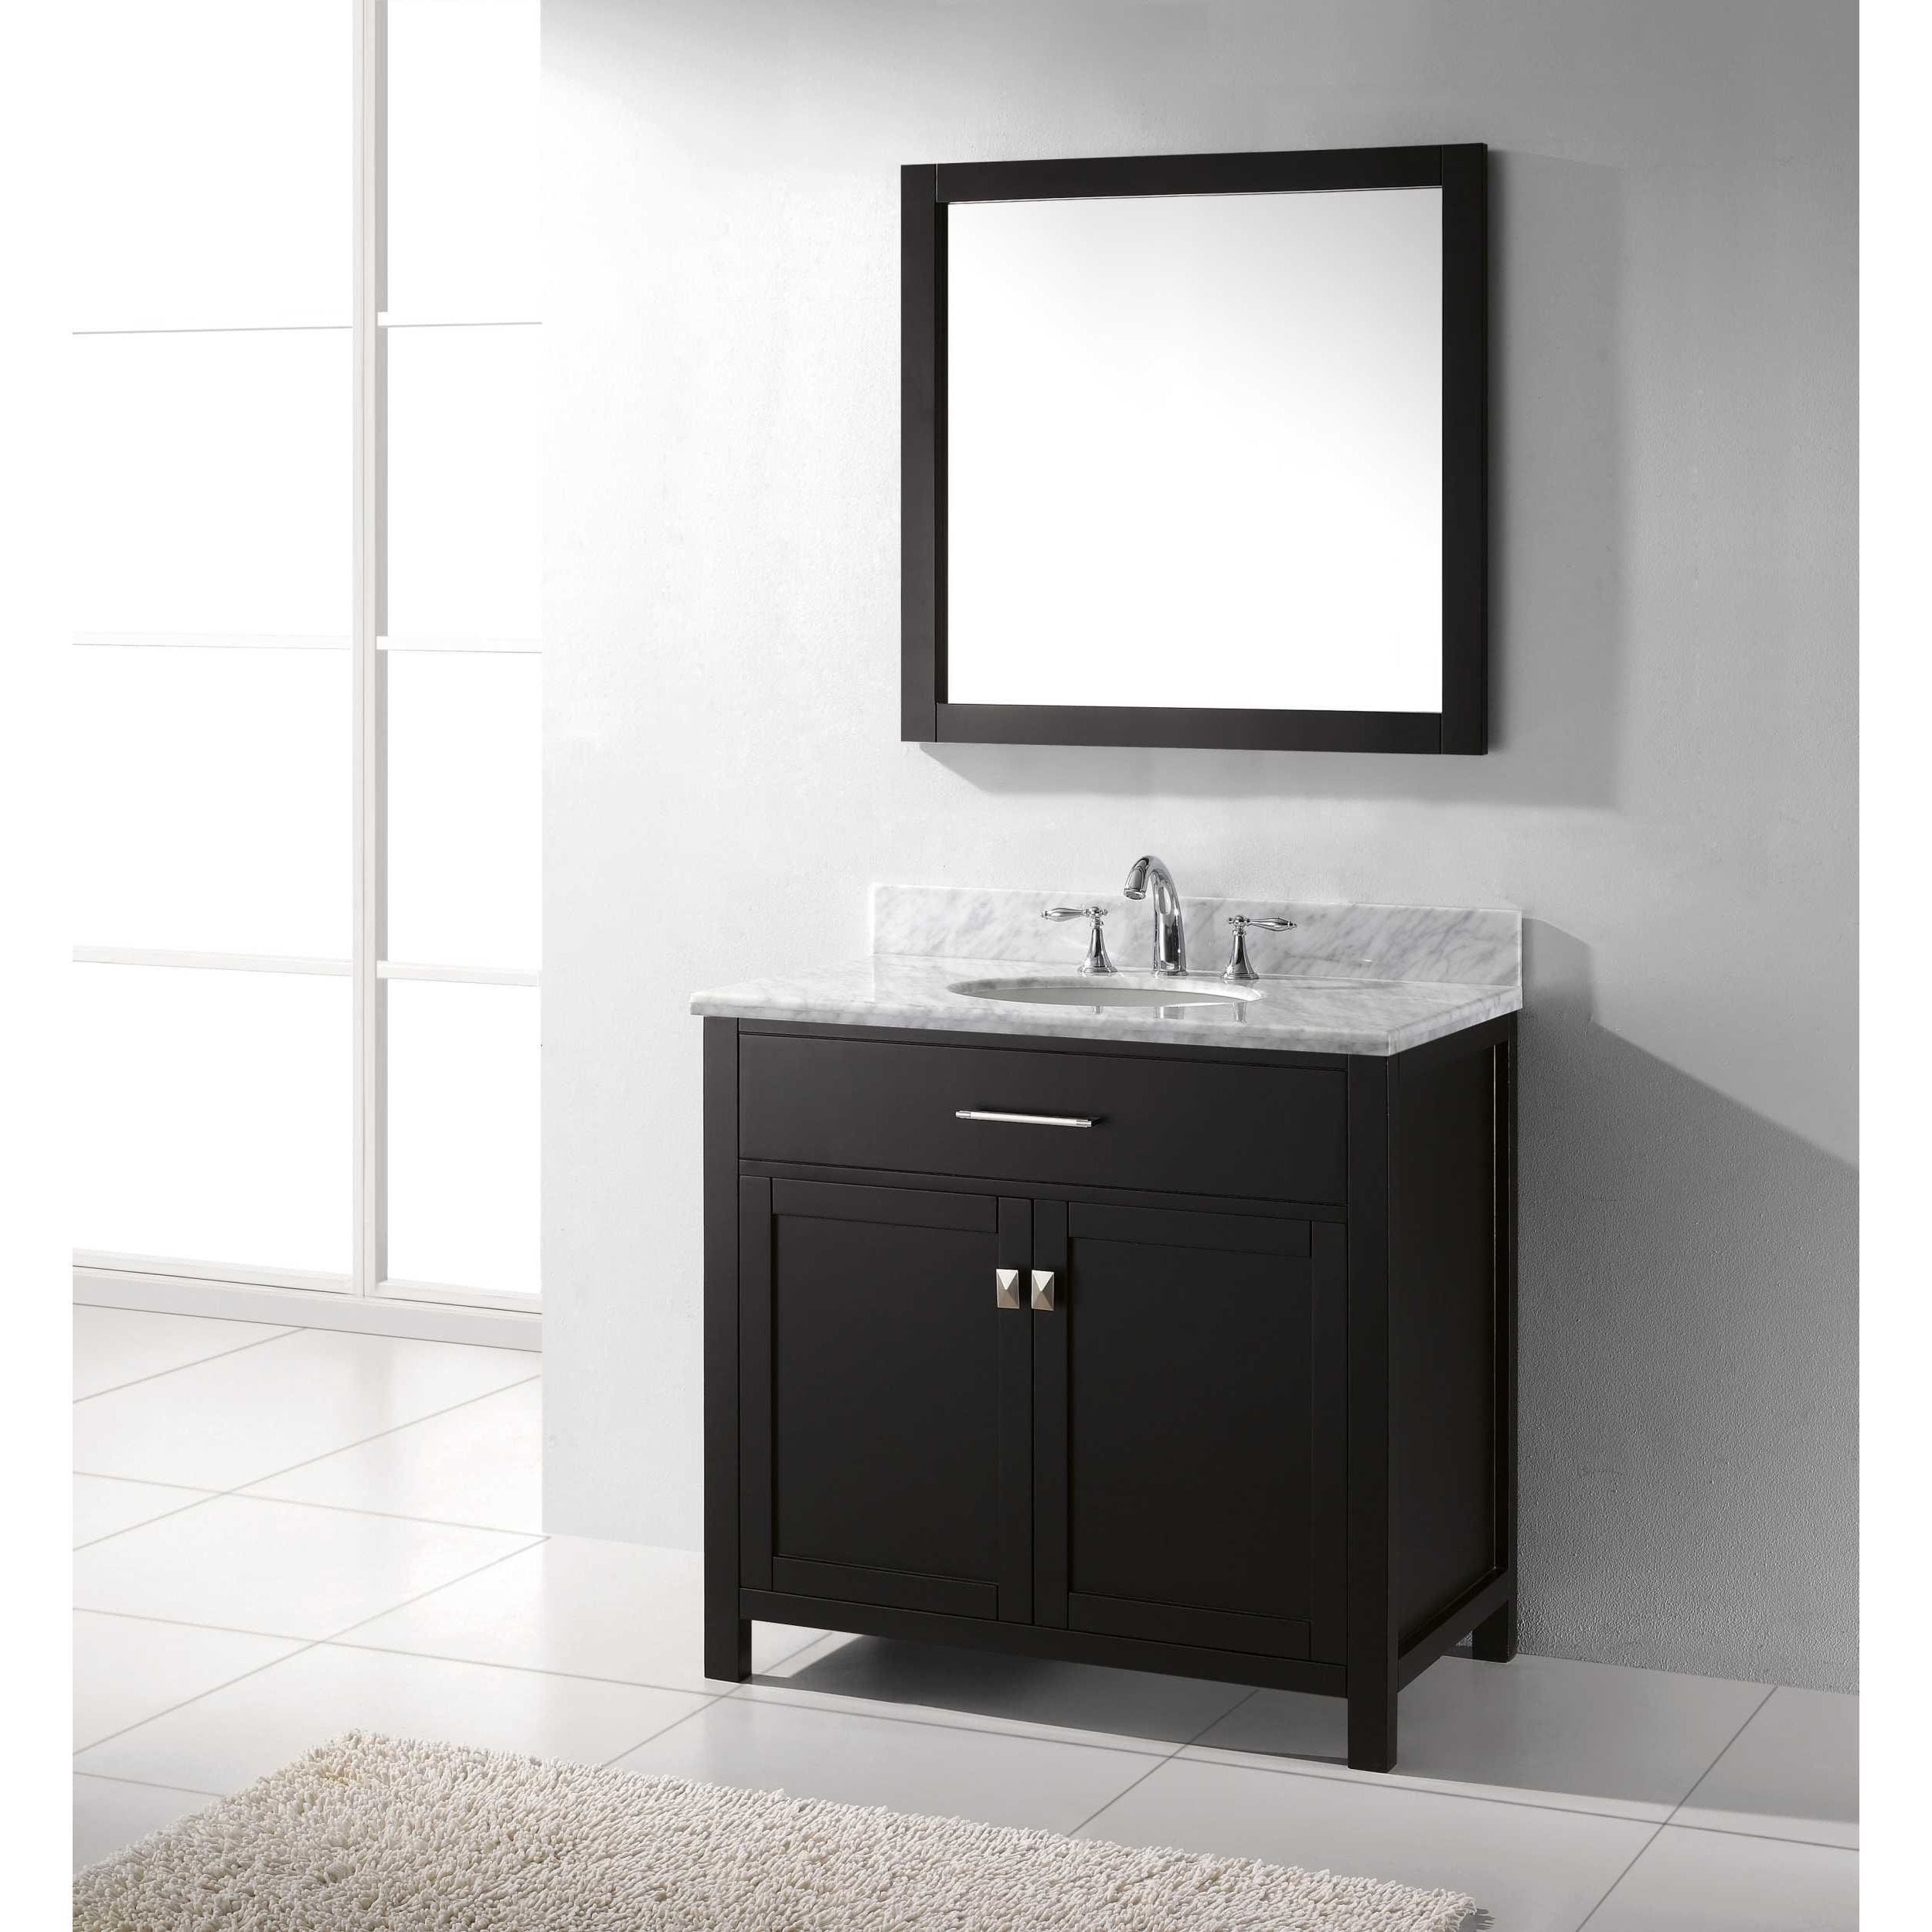 Shop Caroline Inch Single Vanity White Marble Top Round Sink With - 36 inch marble tile